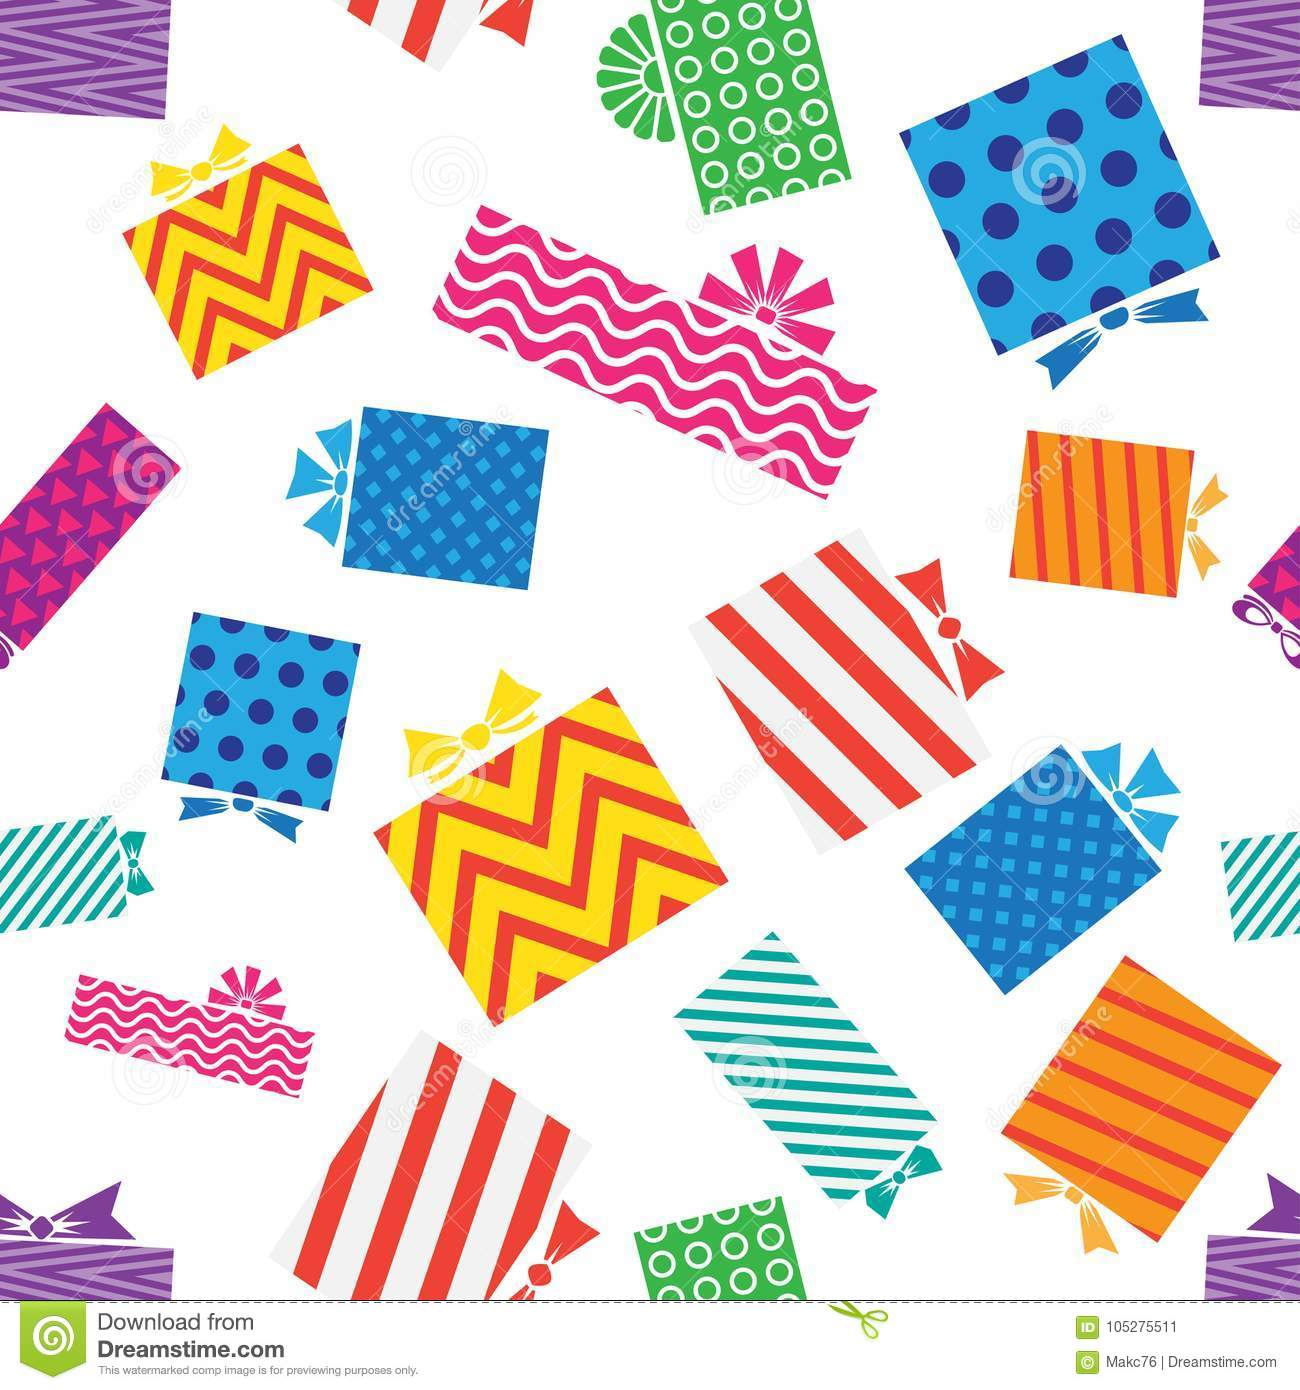 Seamless pattern, gift boxes on white background